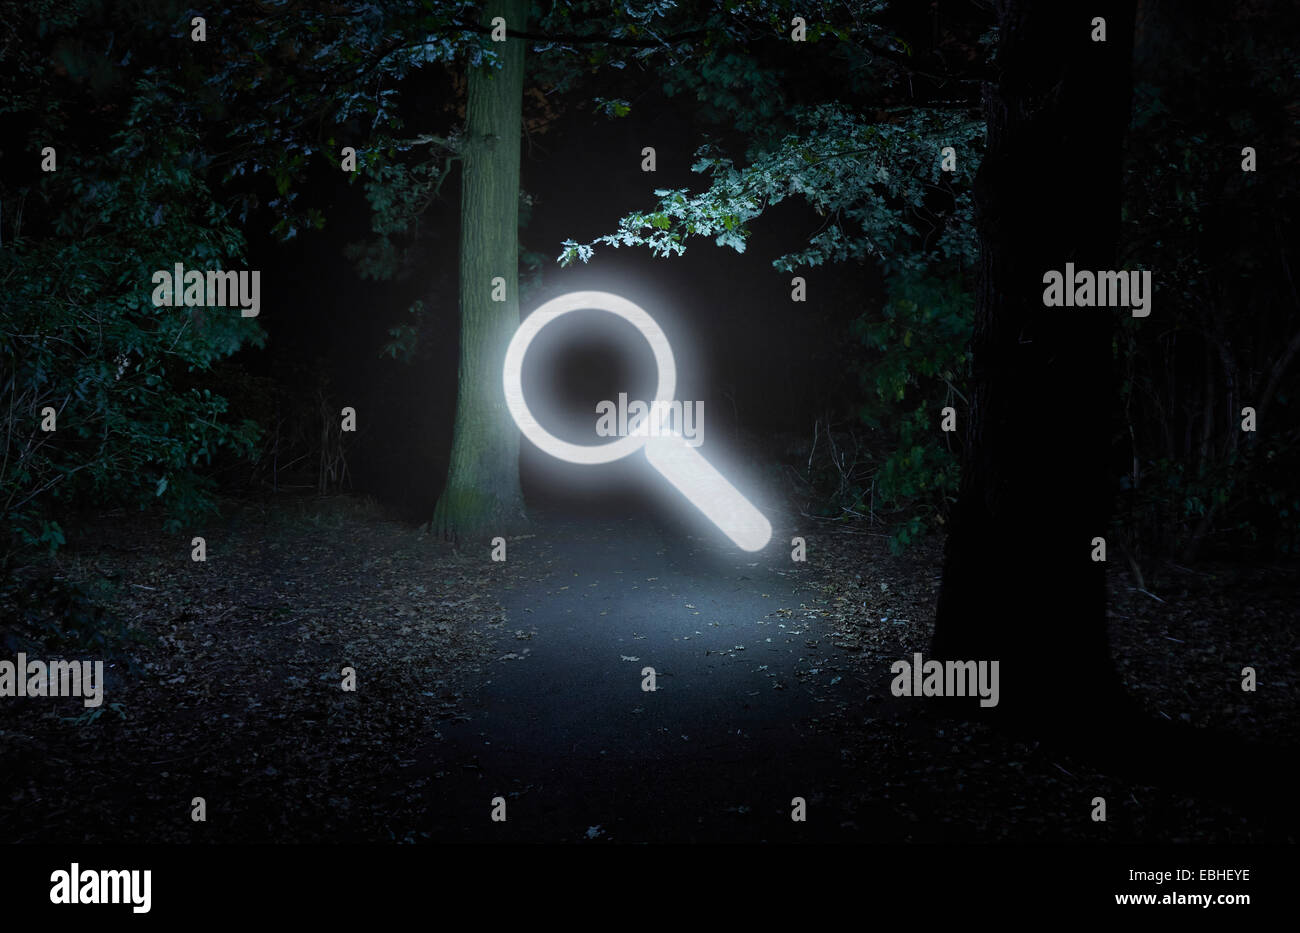 Forest at night, with illuminated search symbol - Stock Image